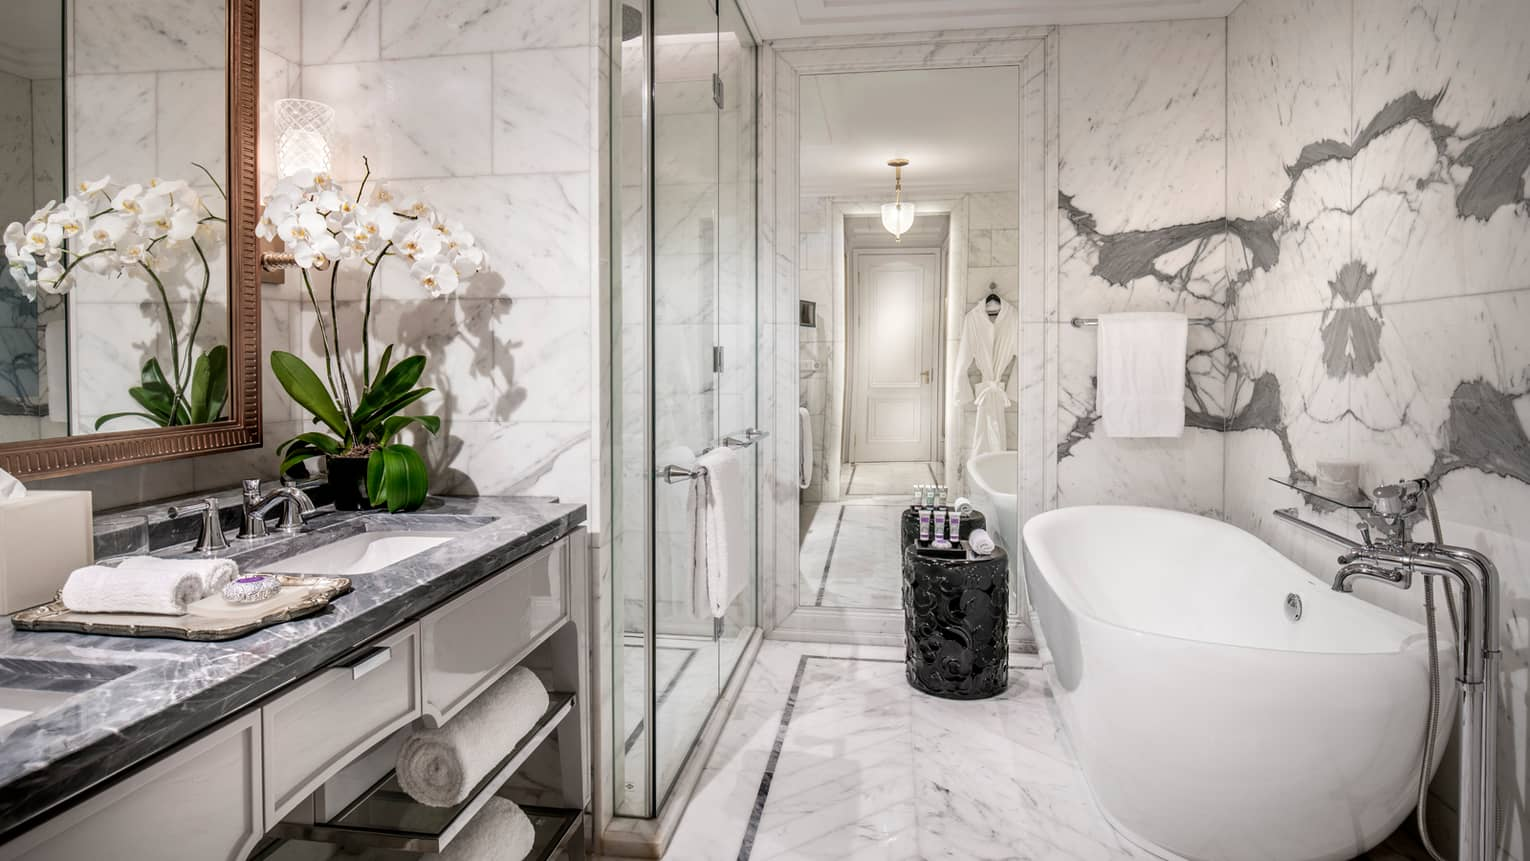 Modern bathroom with grey marble counters, white orchids in vase, glass shower